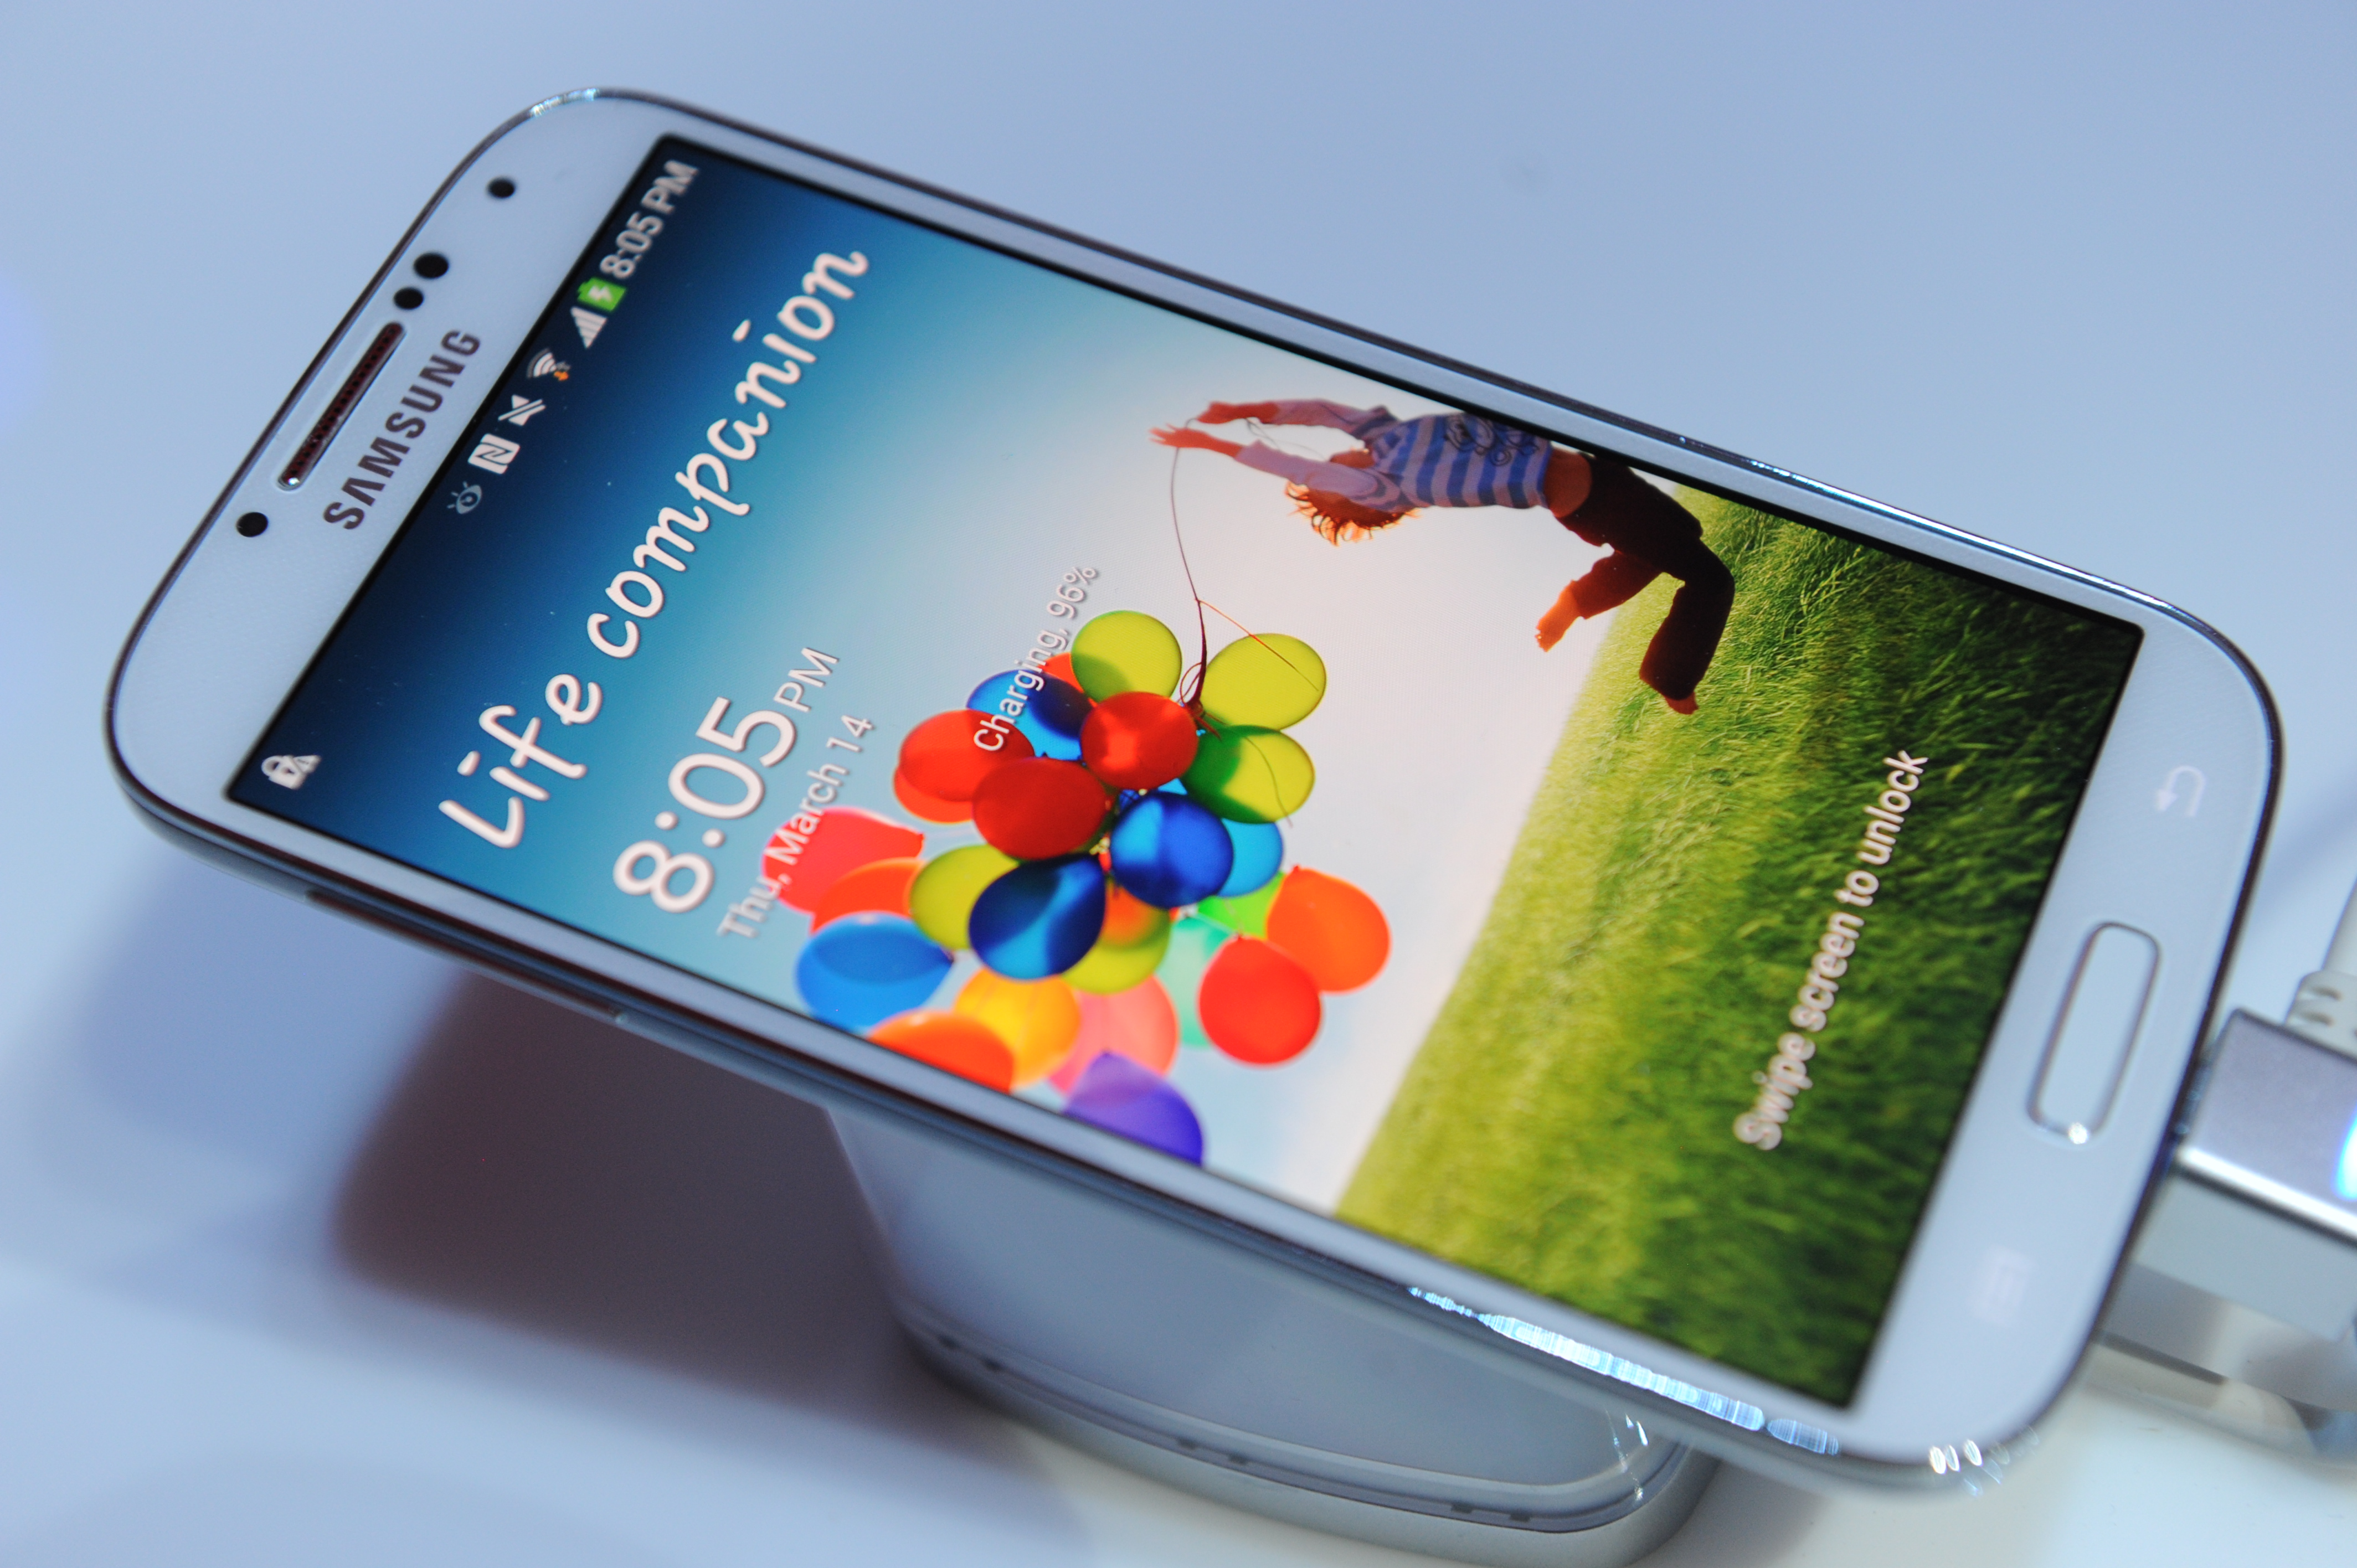 Samsung's Galaxy S5 smartphone will reportedly launch by April and could include eye-scanning tech